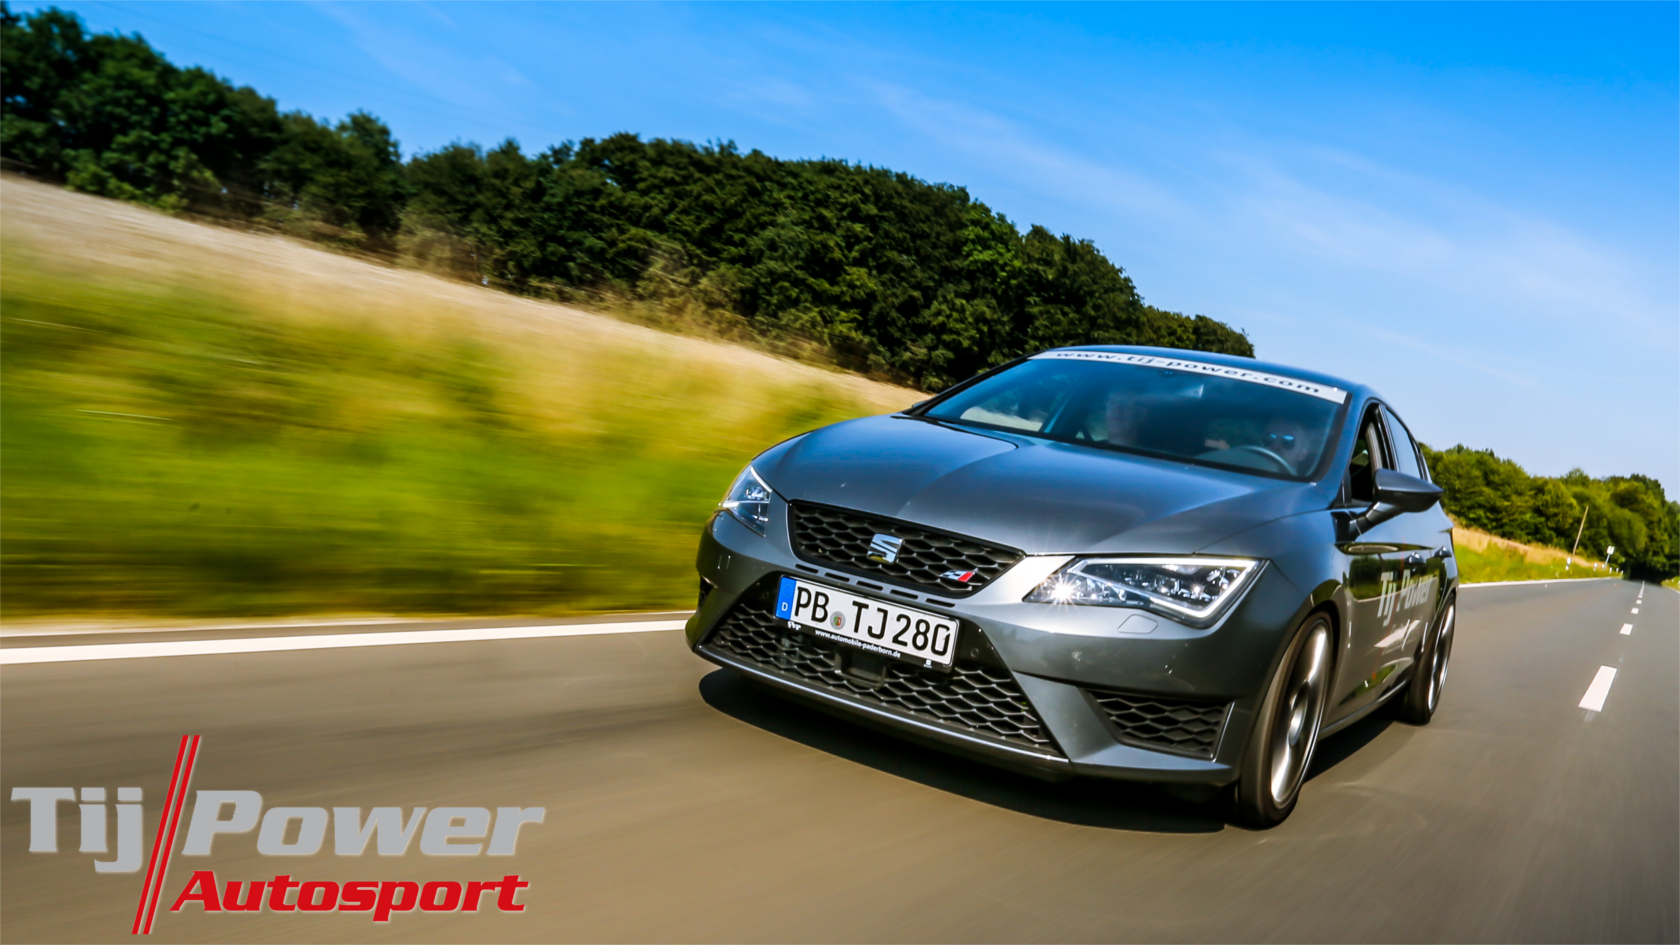 Wallpaper Seat Leon 5F Cupra – Hintergrundbild zum Download